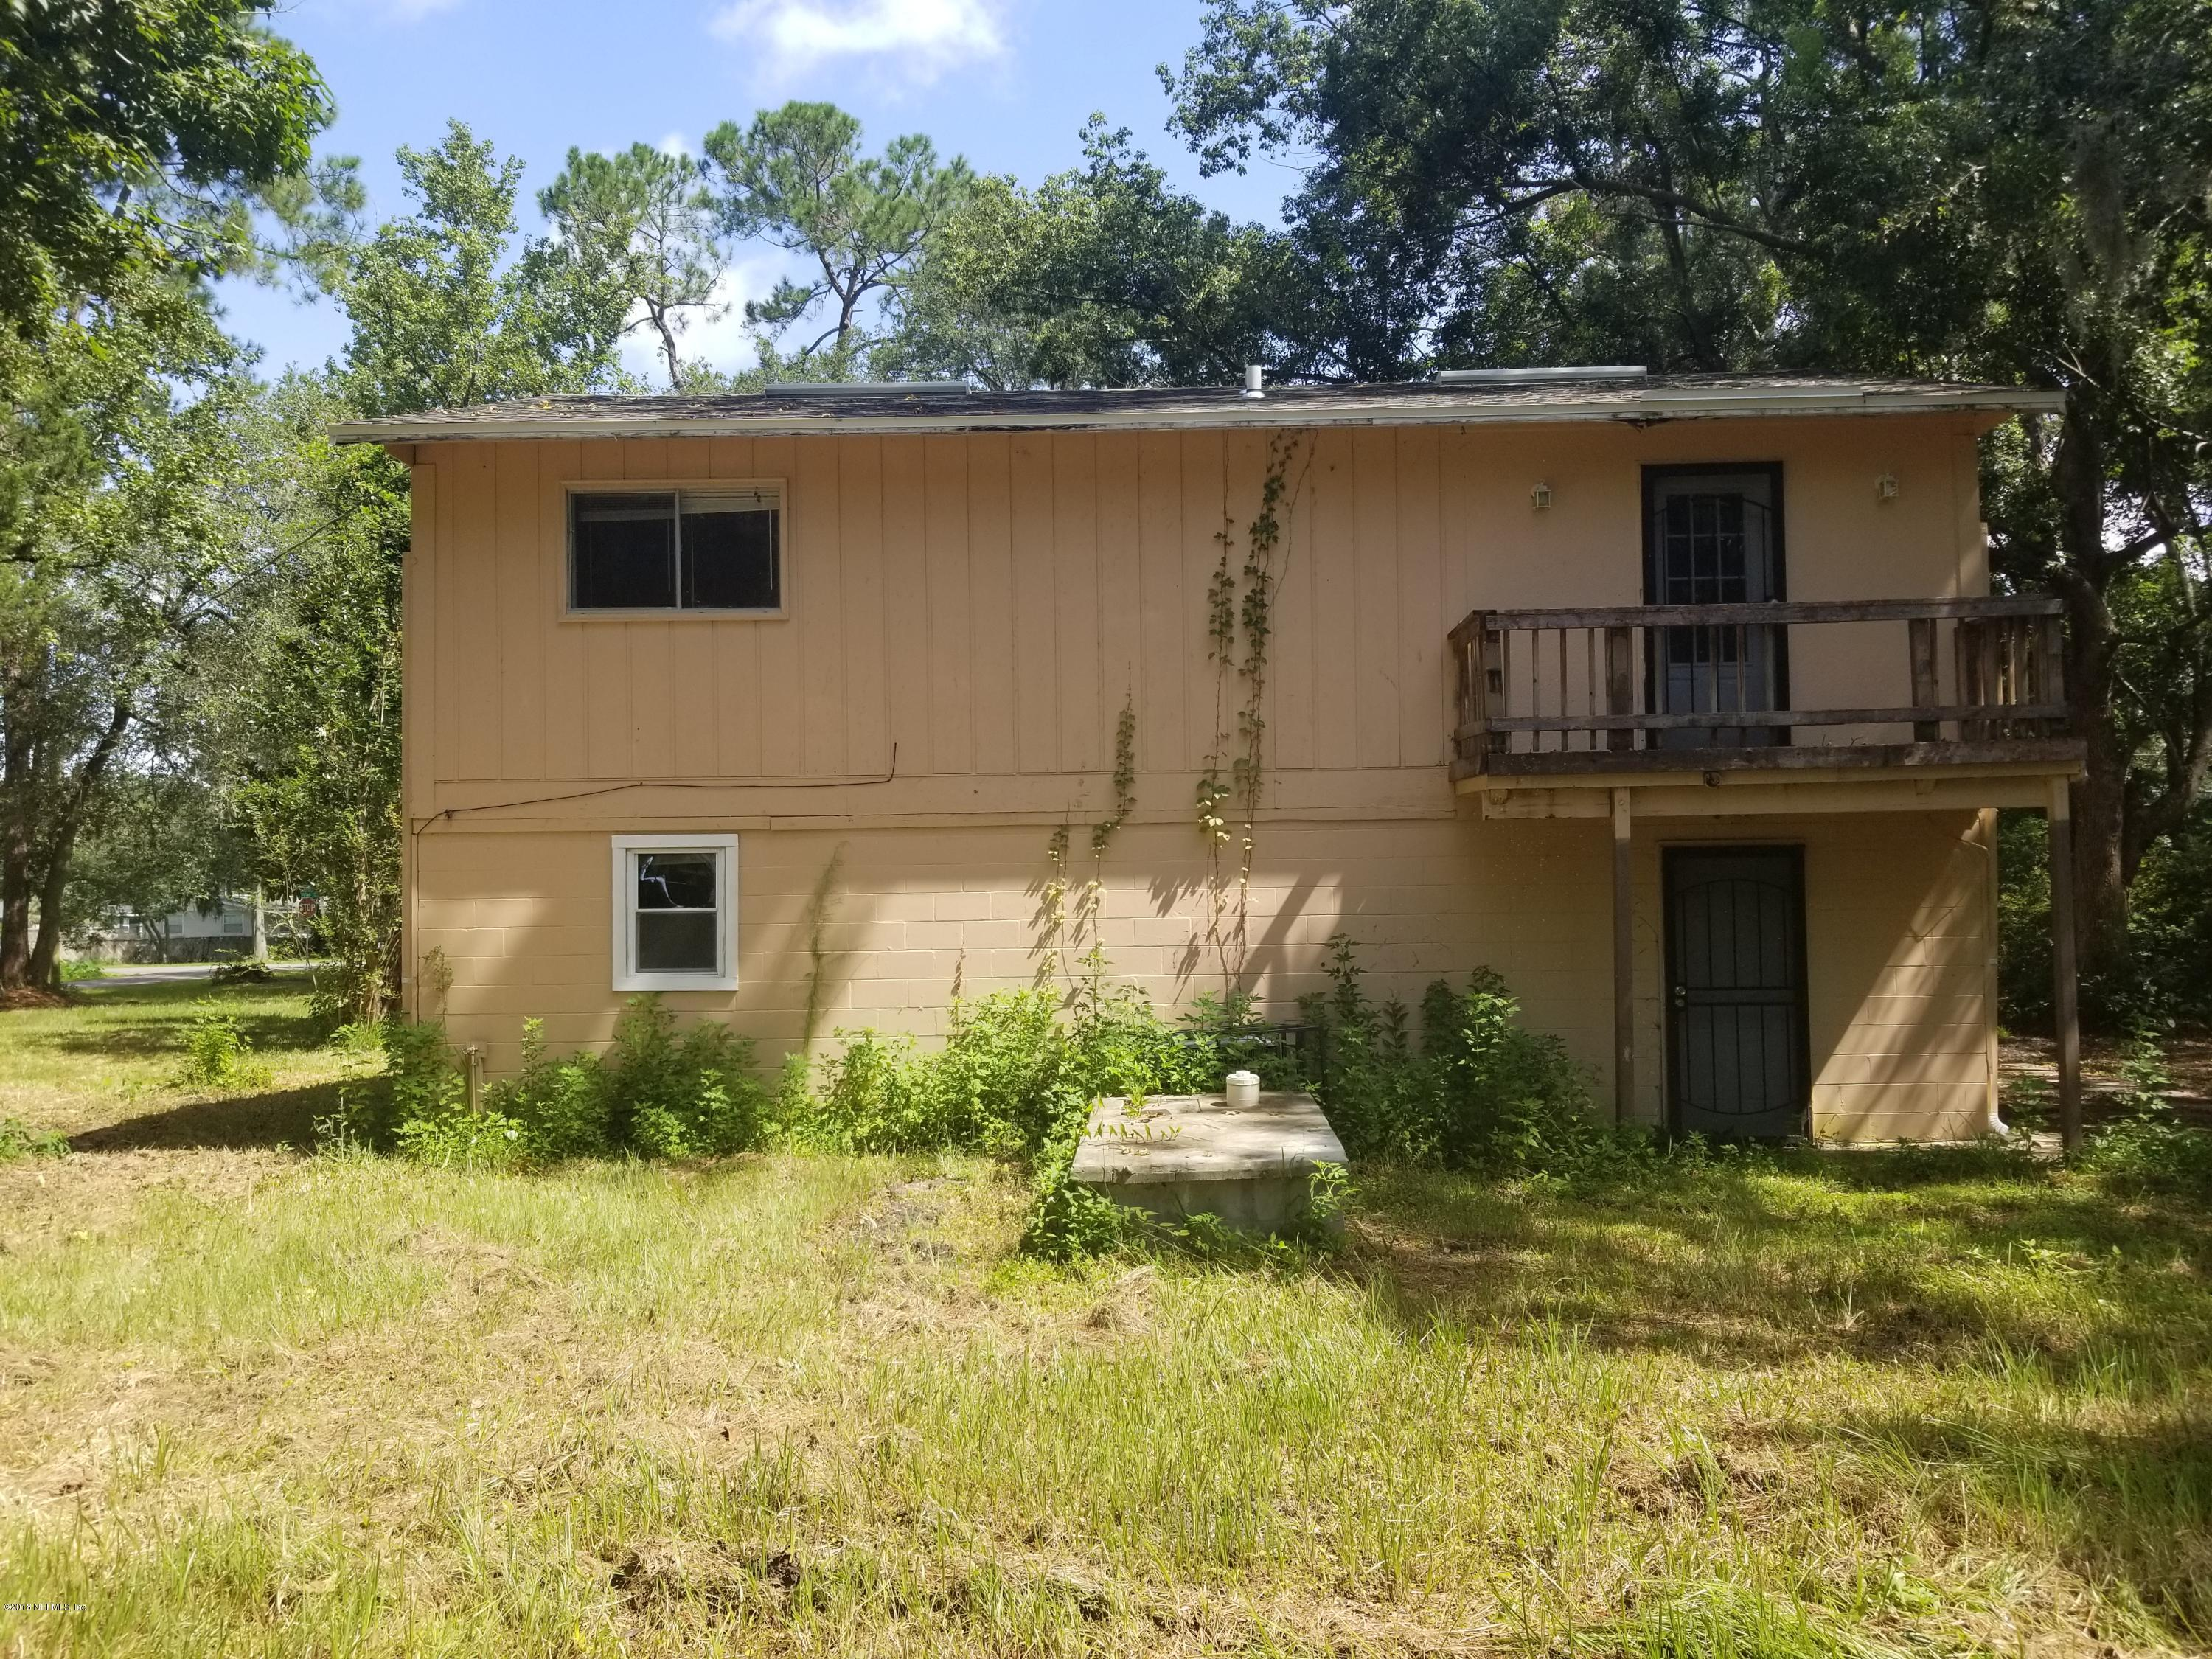 7074 DAYTON, JACKSONVILLE, FLORIDA 32210, 4 Bedrooms Bedrooms, ,2 BathroomsBathrooms,Residential - single family,For sale,DAYTON,951548